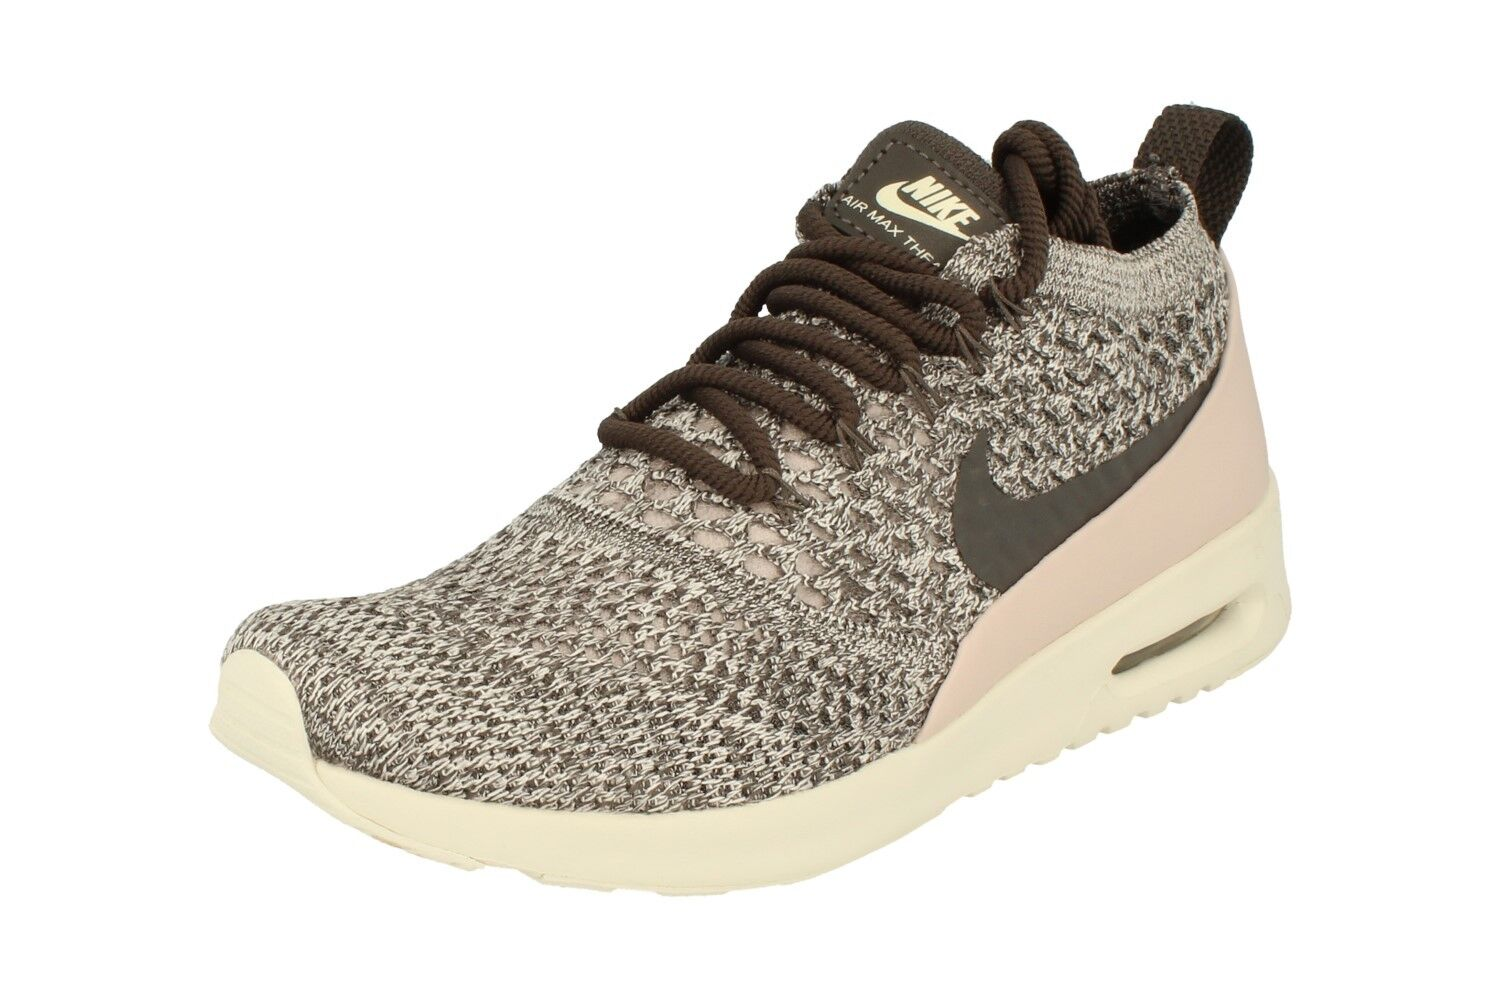 Nike Nike Nike Air Max Thea Ultra FK femmes Running Trainers 881175 Baskets Chaussures 003 611a0f